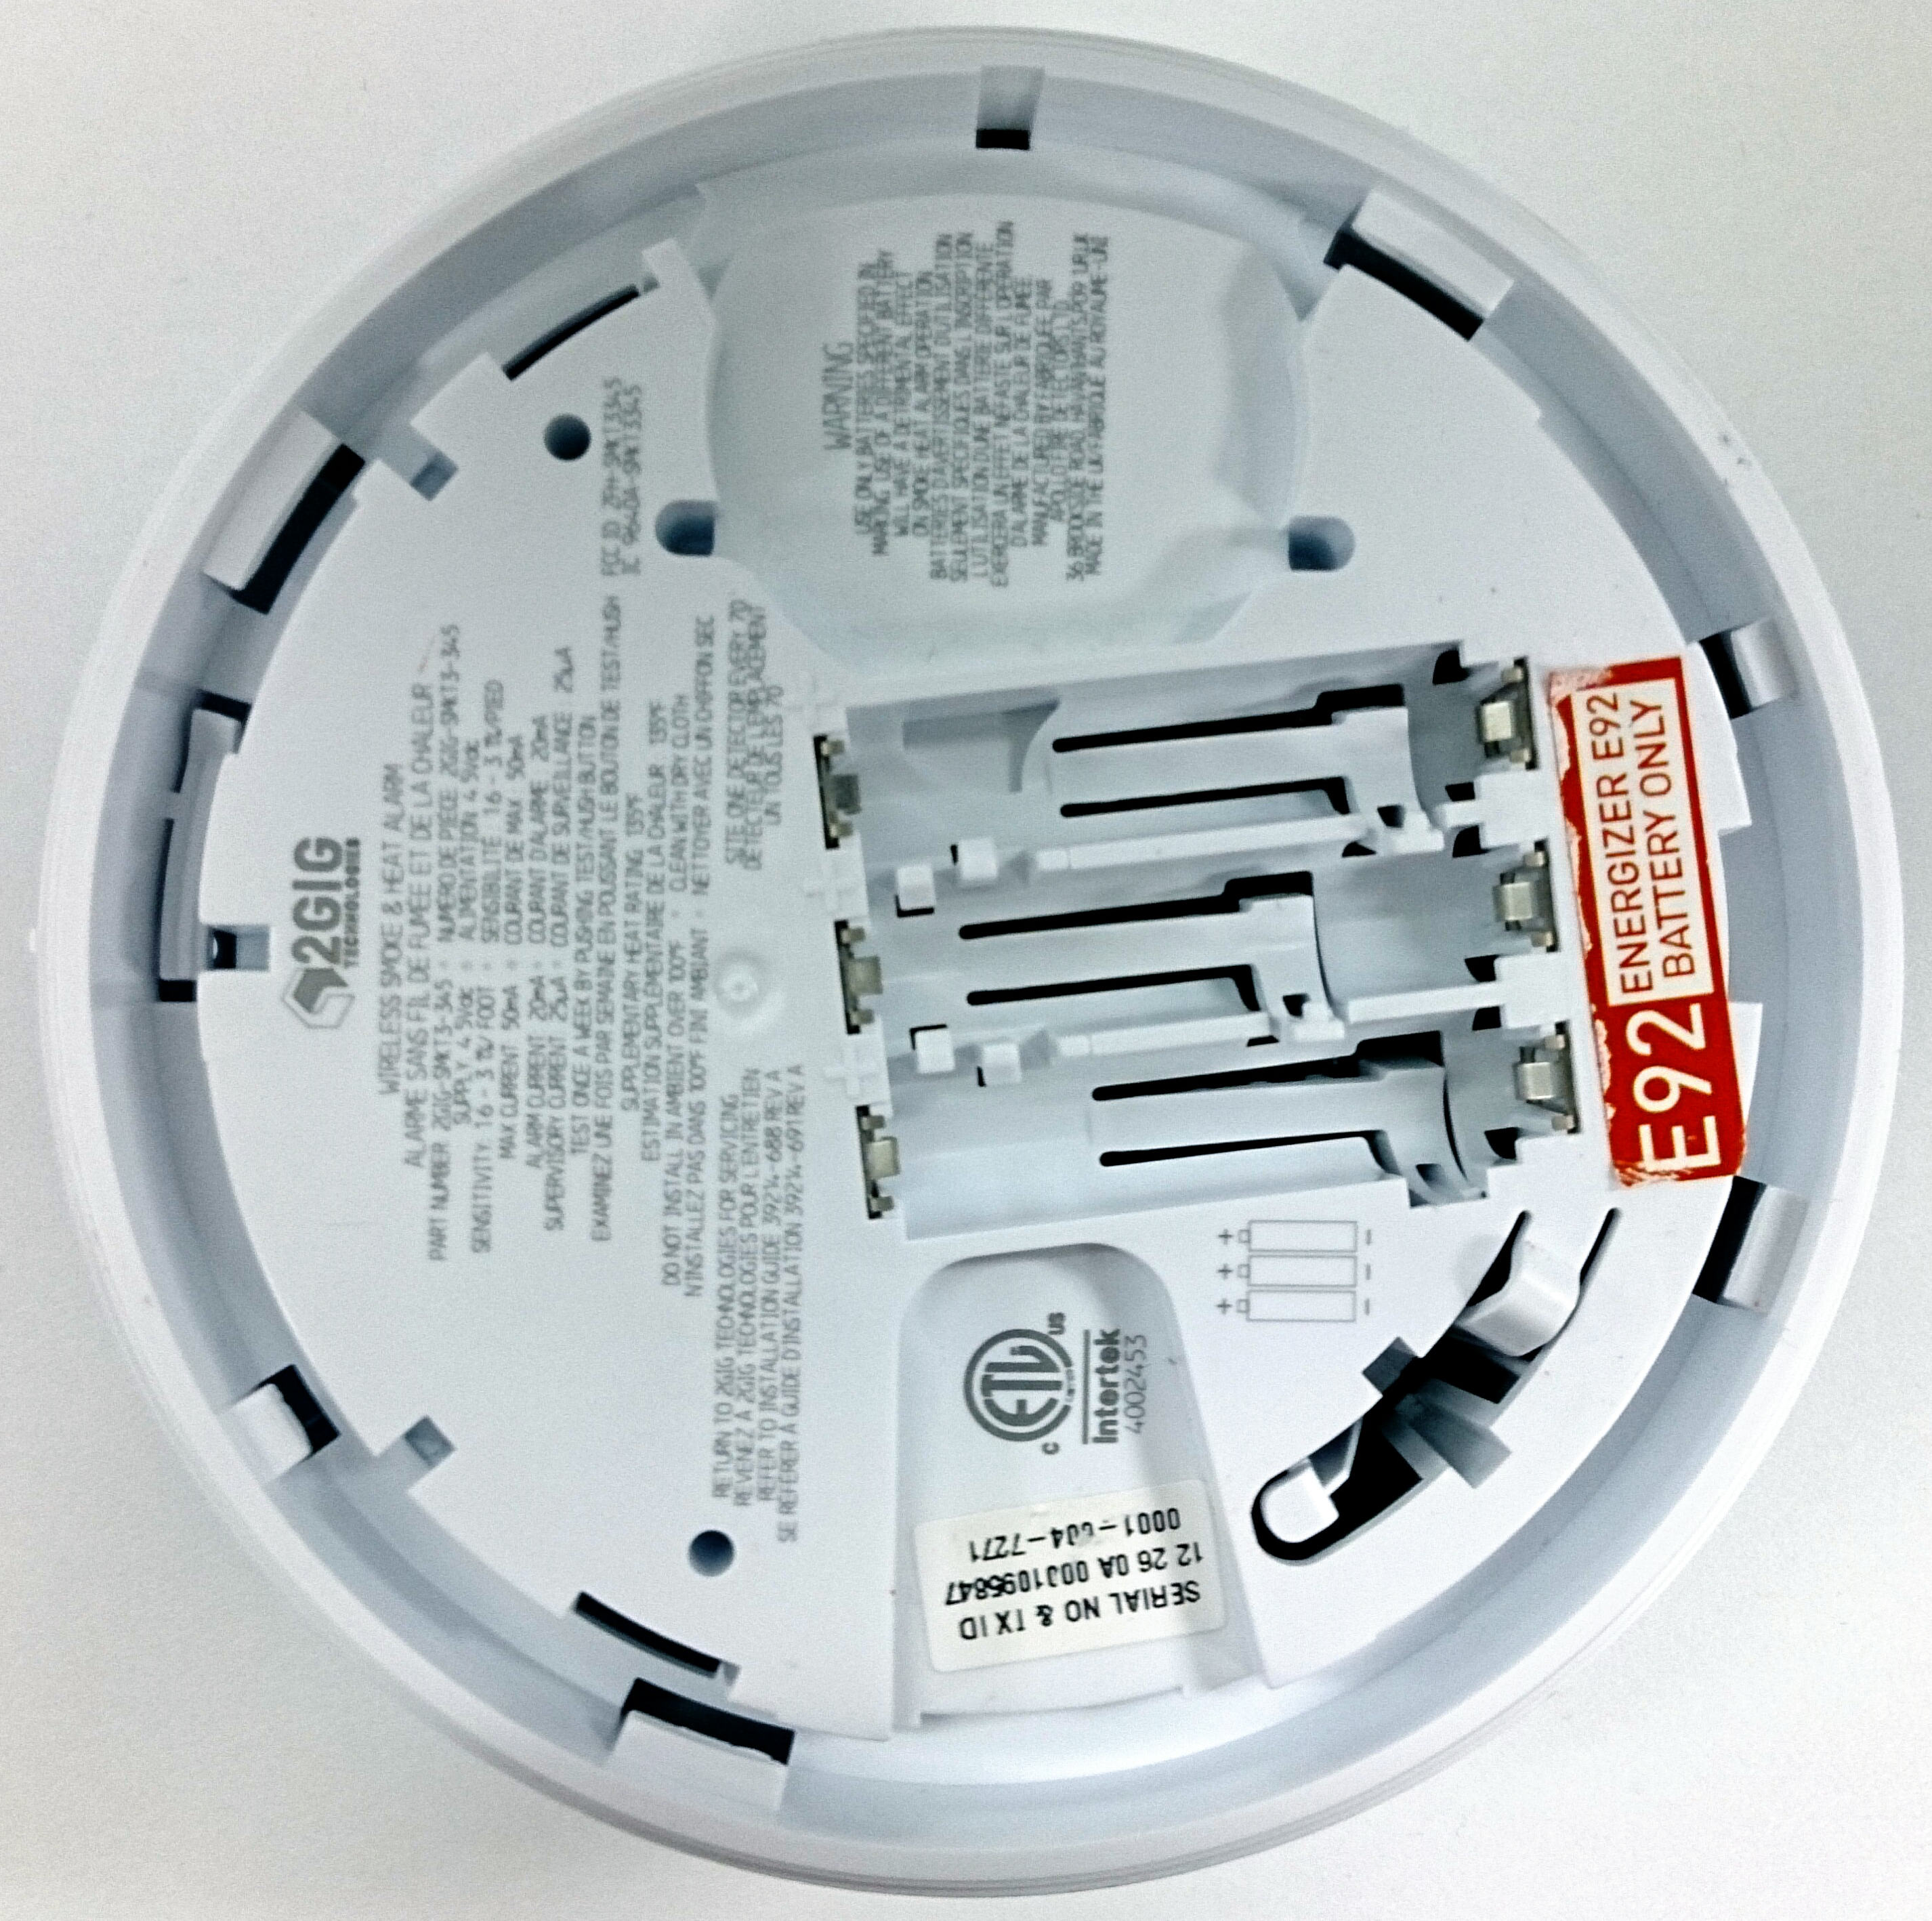 Smoke Detector Smk001 Change Batteries